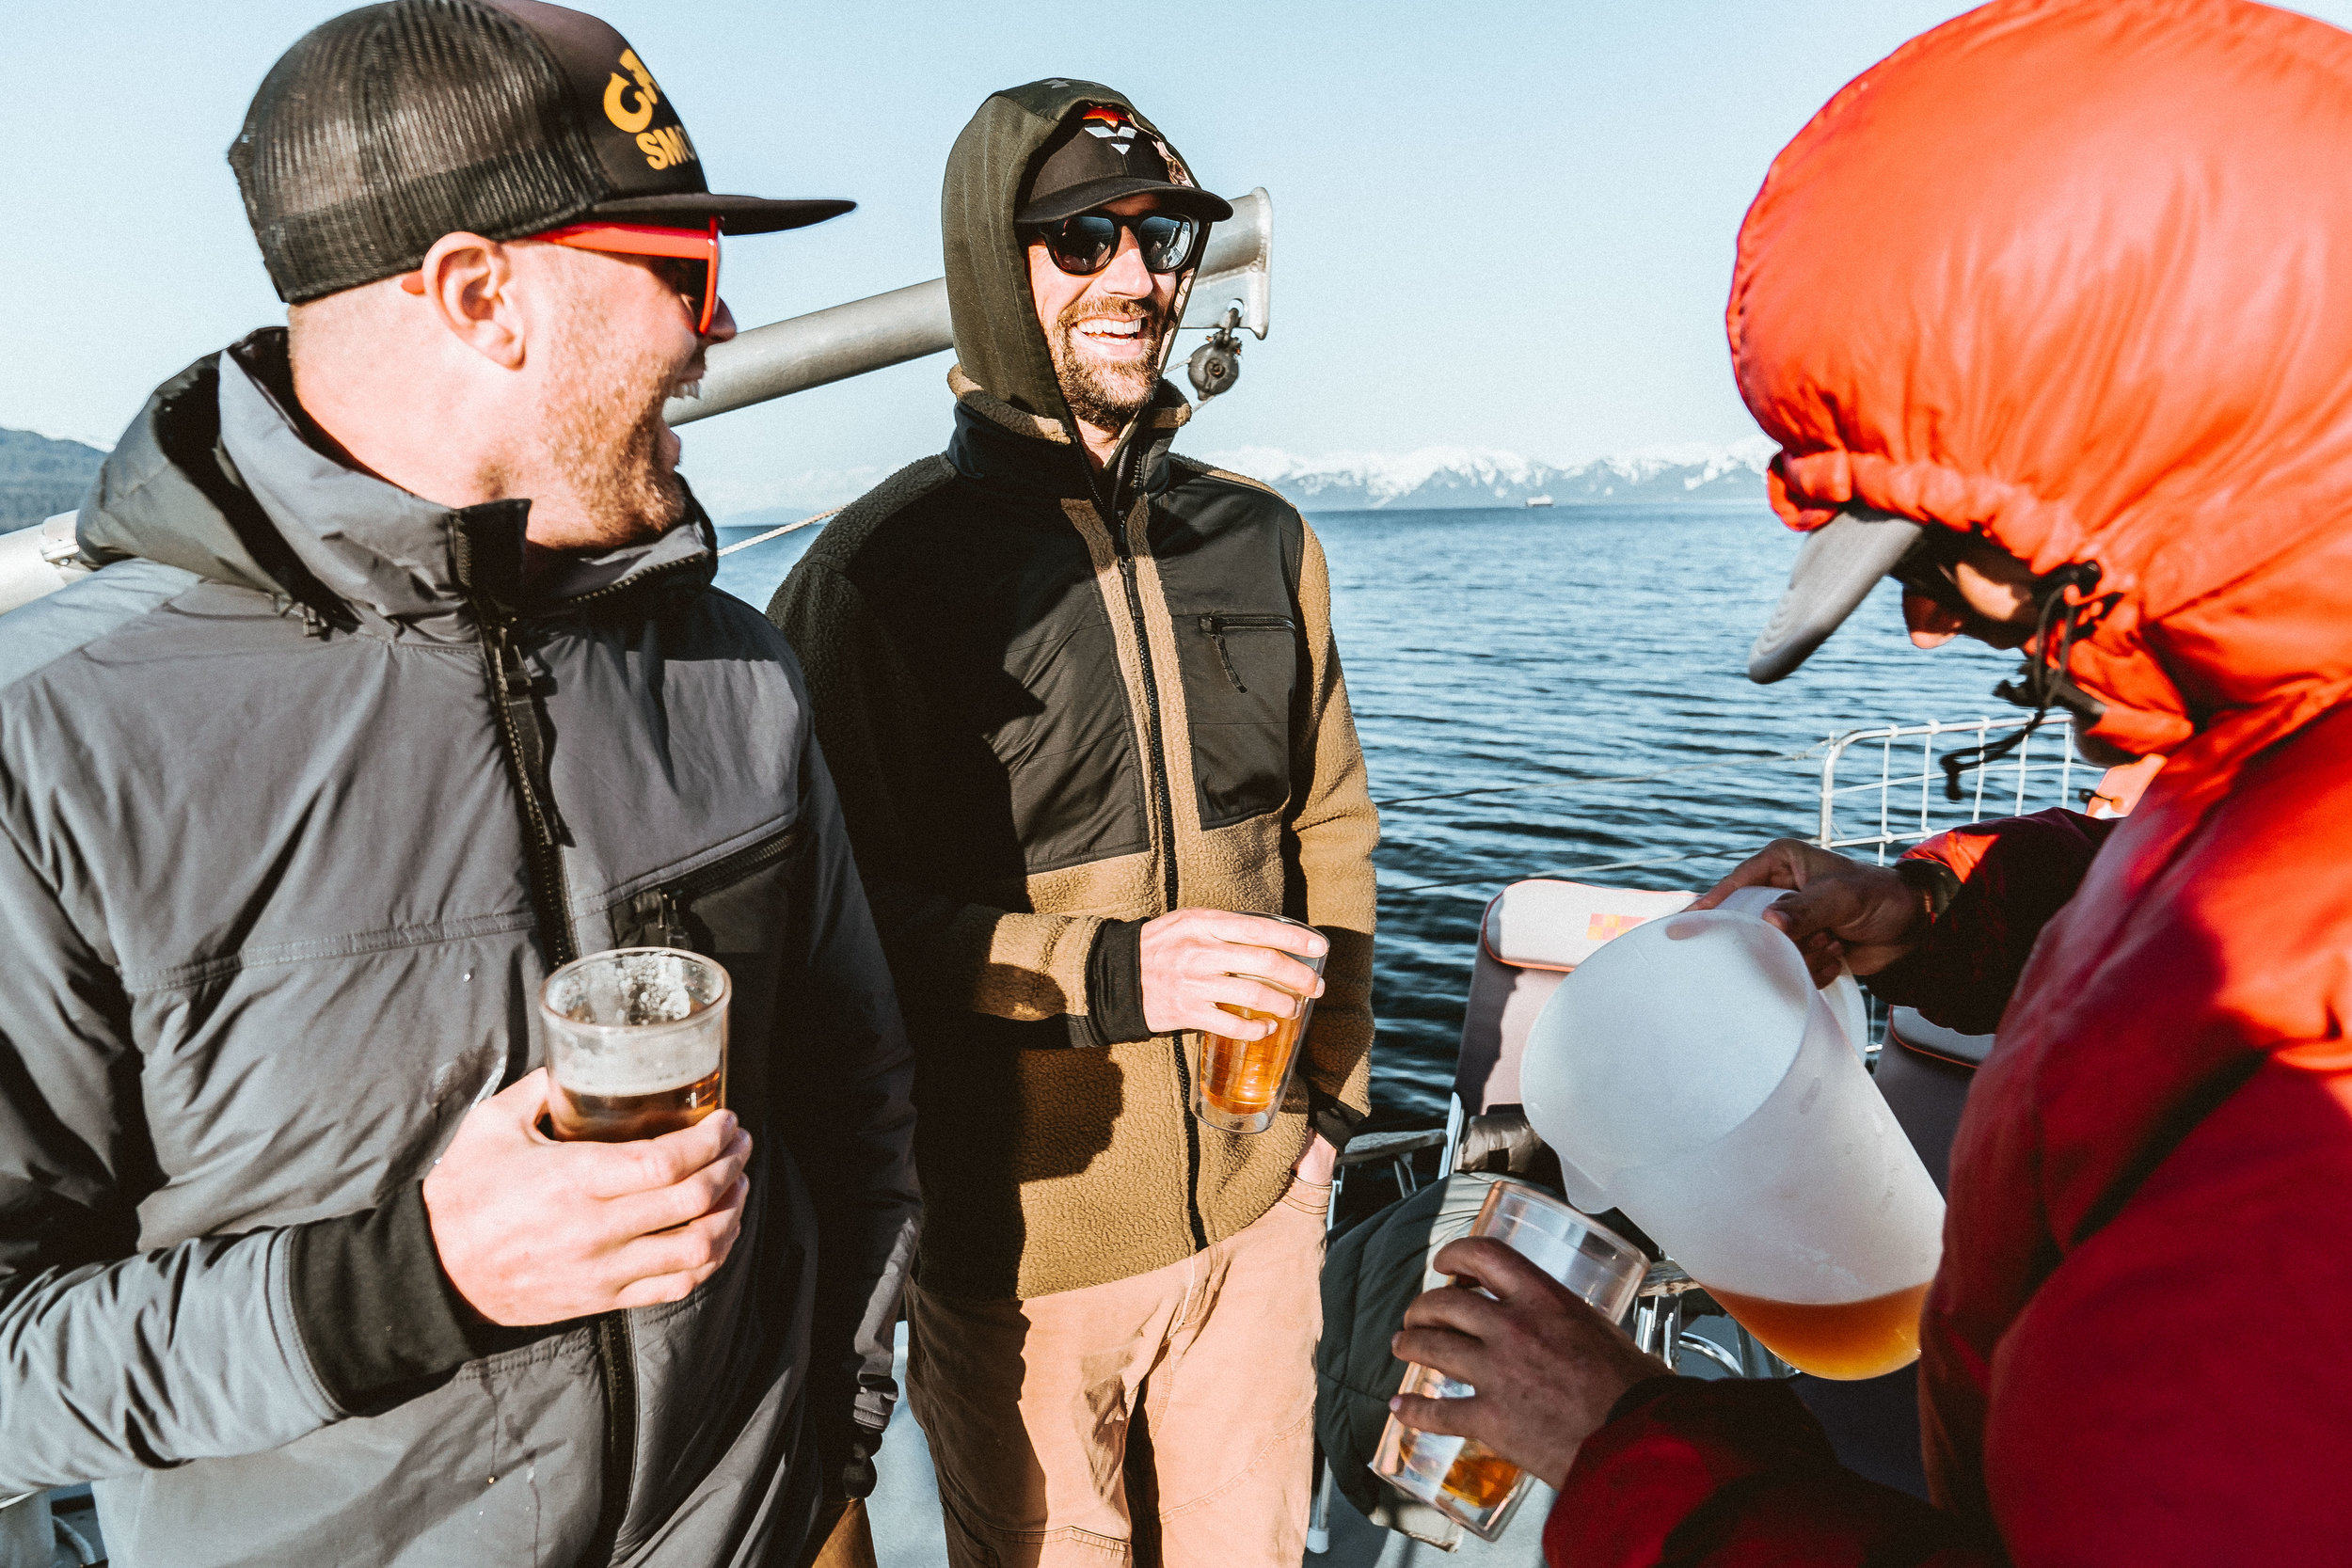 Boat kegs for the win.  Mountain Standard for the warmth.